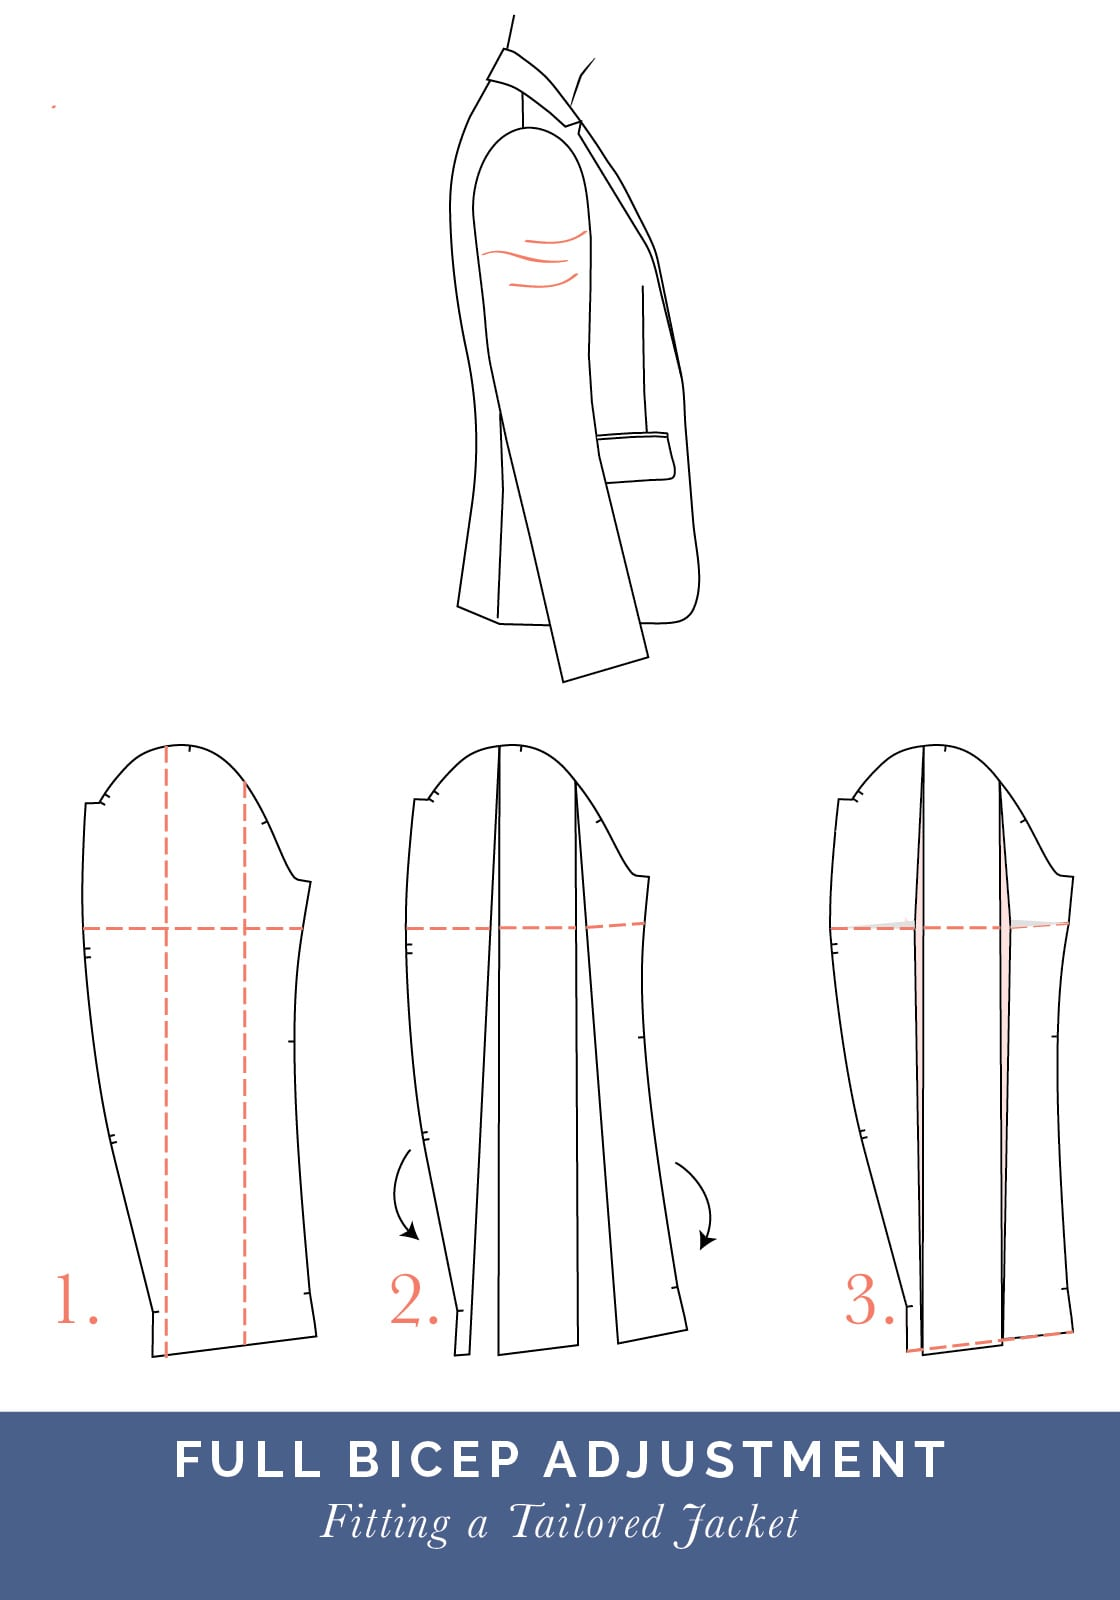 Full bicep adjustment on two piece sleeve // How to fit a Tailored jacket or Blazer // Fit adjustment issues and fixes